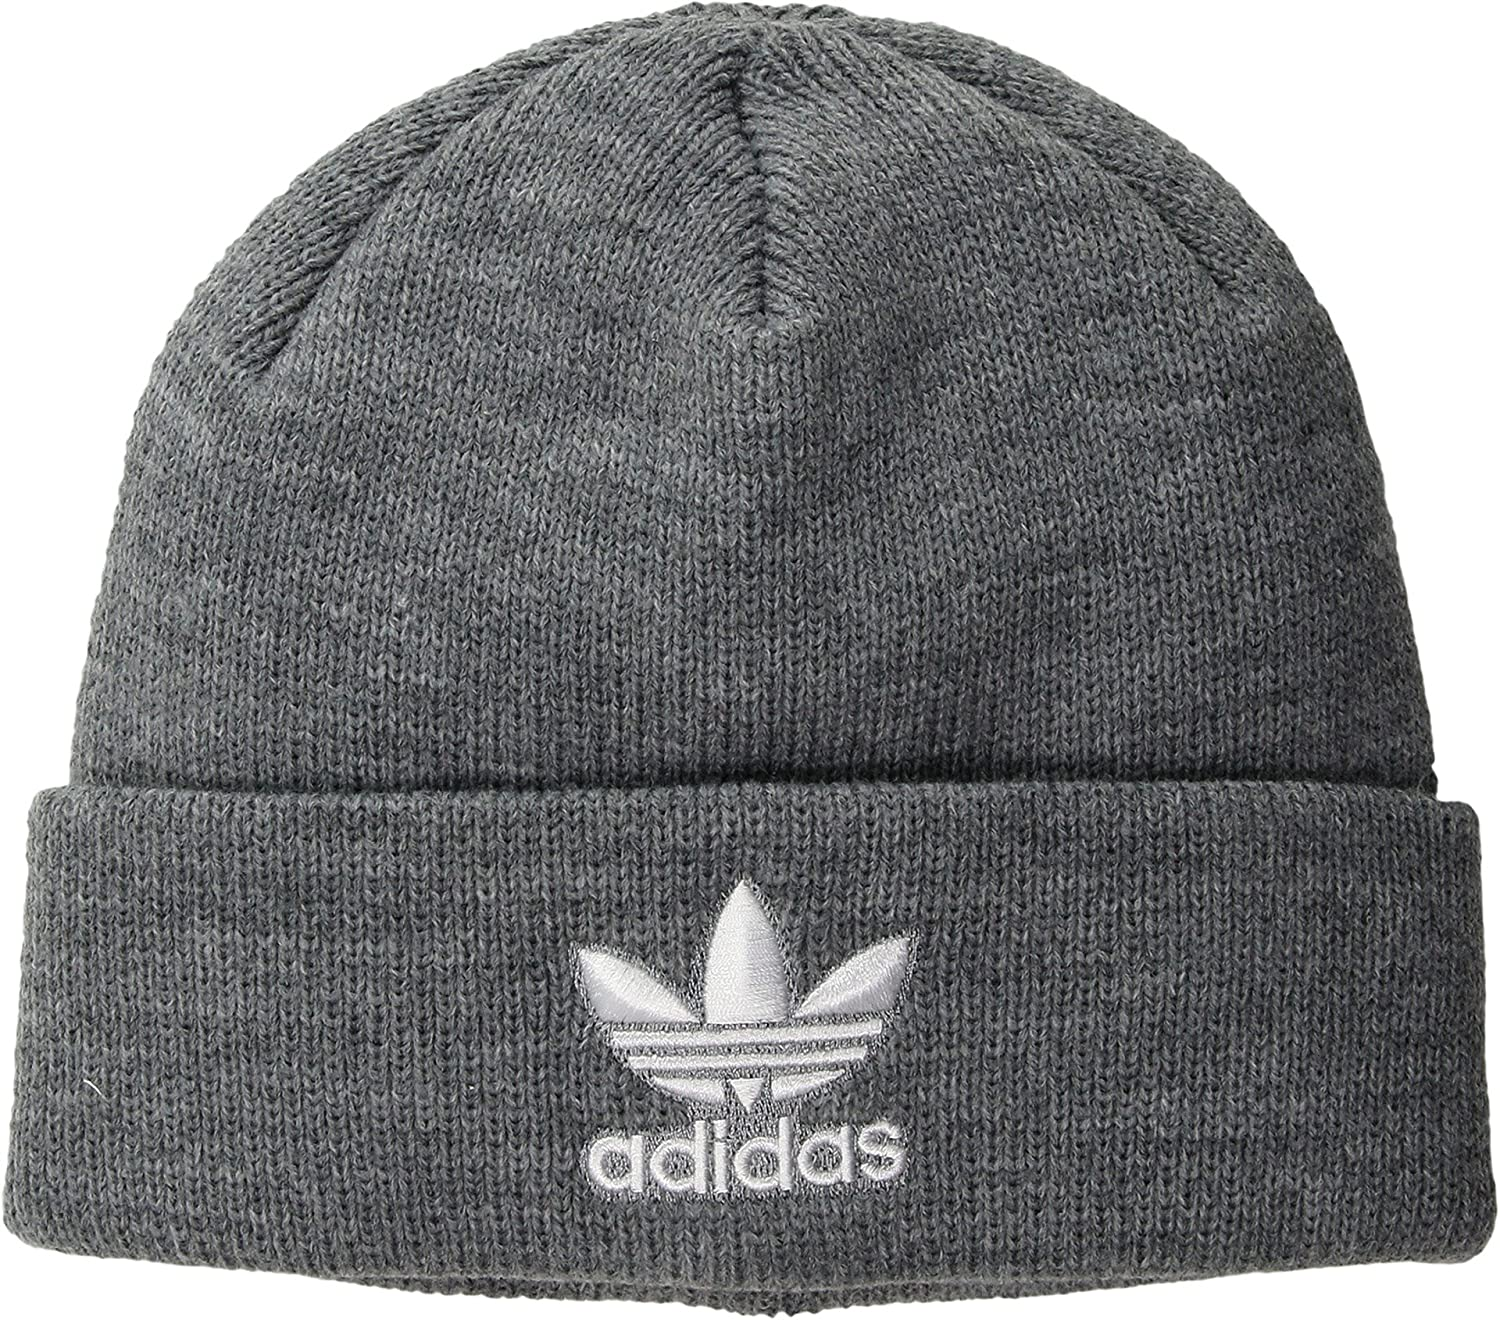 5cf7583f50203 Amazon.com  adidas Men s Originals Trefoil Beanie